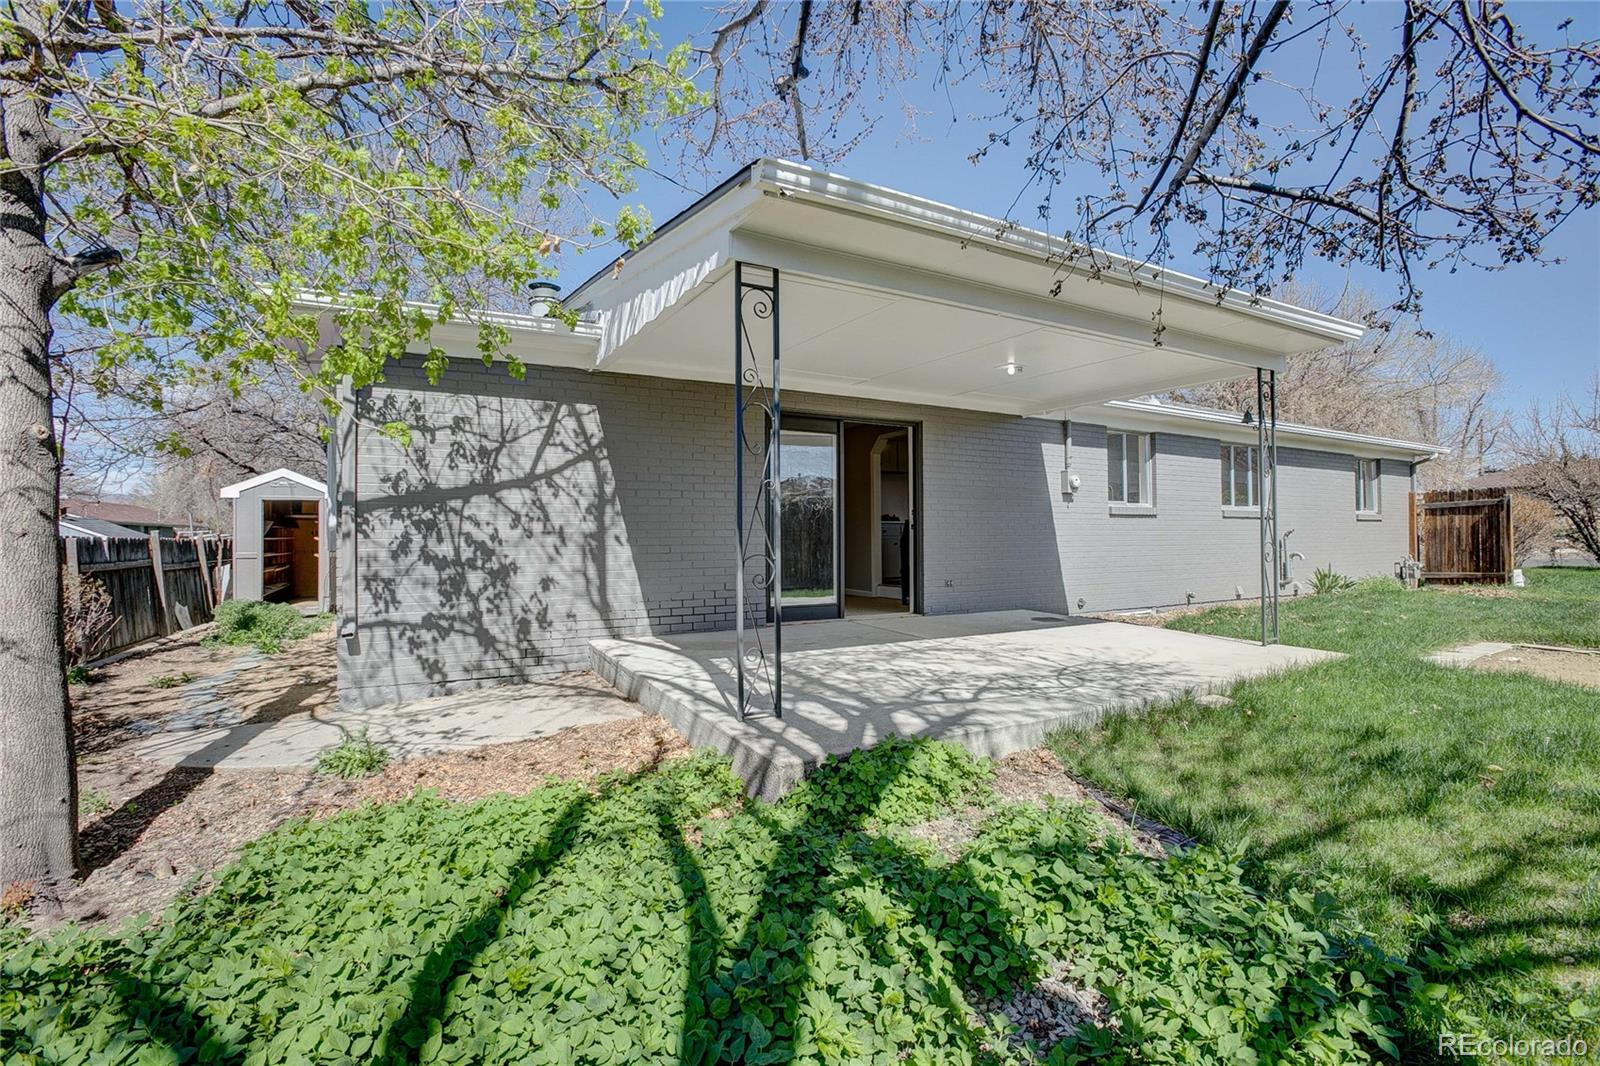 MLS# 9710462 - 32 - 1250 W 7th Ave Dr, Broomfield, CO 80020